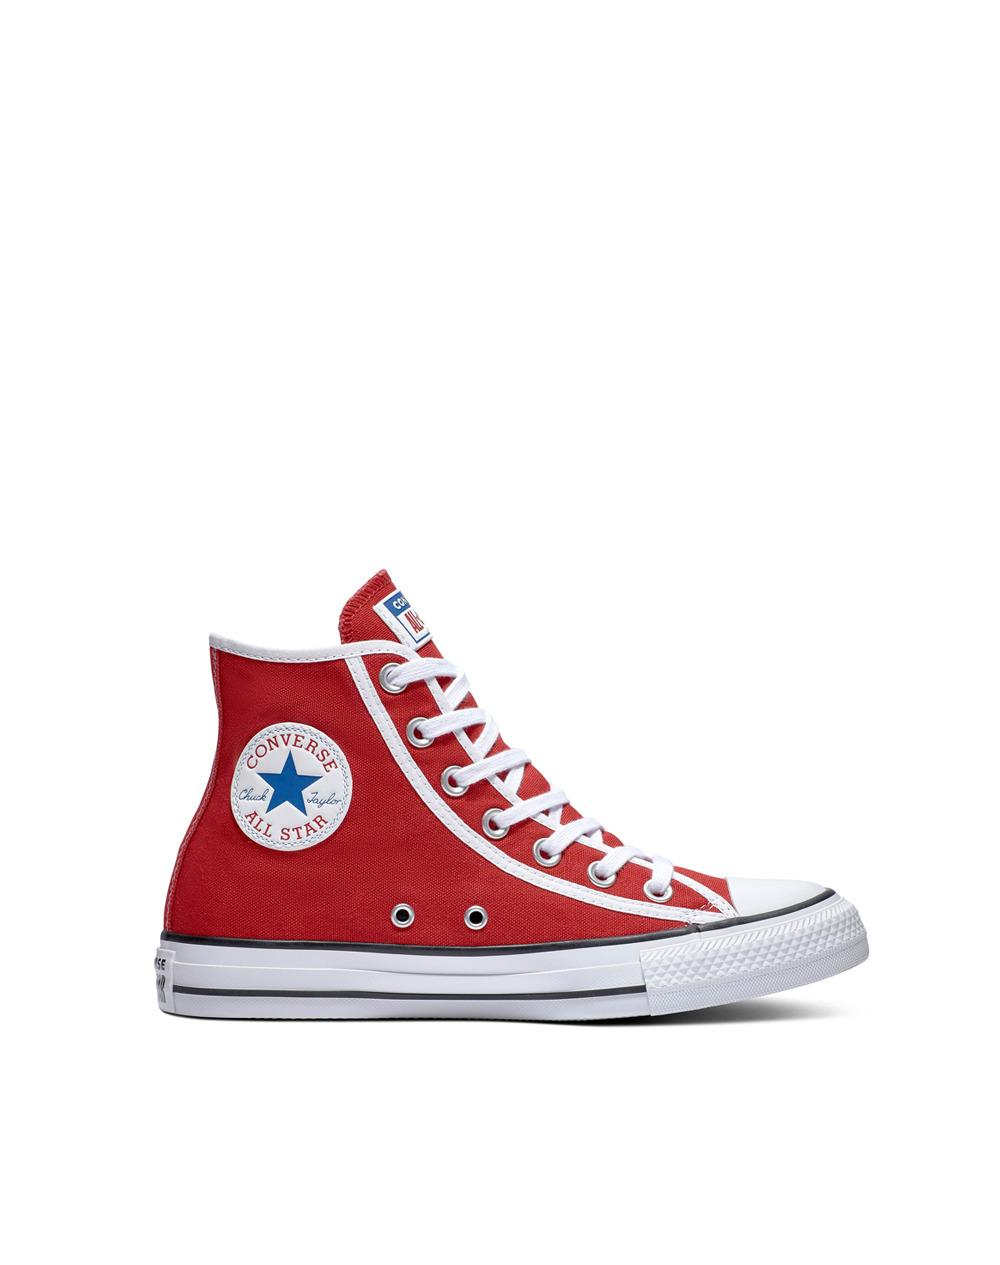 86a76d3c5ea6 Converse. Red Chuck Taylor All Star Gamer Unisex Casual Canvas High-top  Trainers